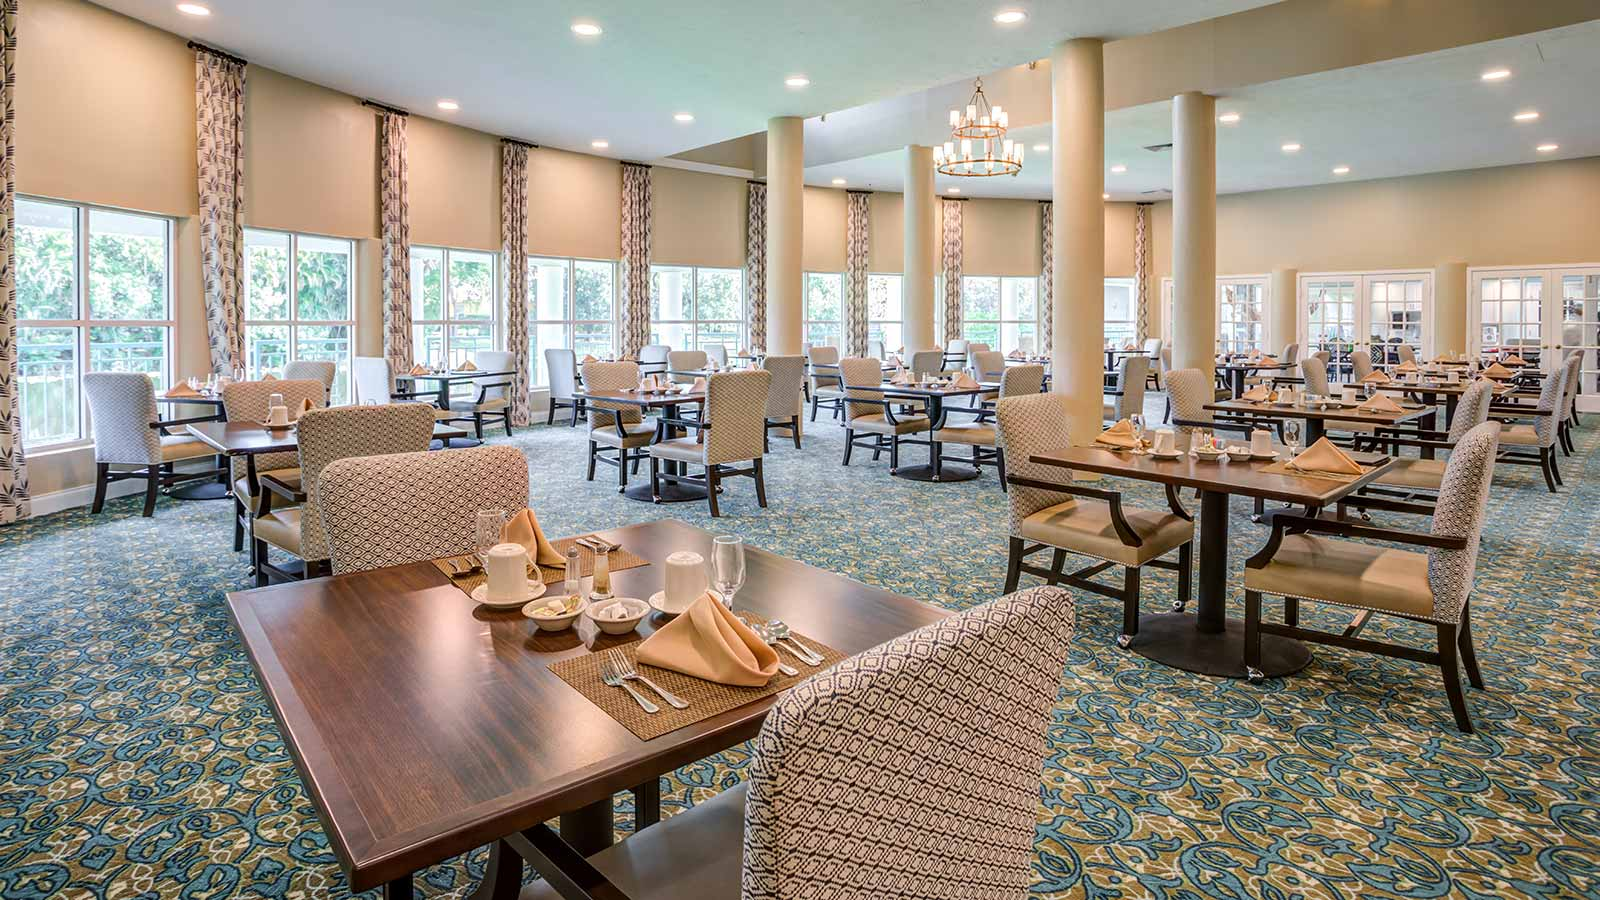 View of restaurant-style dining room at Heron Club at Prestancia an assisted living and memory care community in Sarasota FL